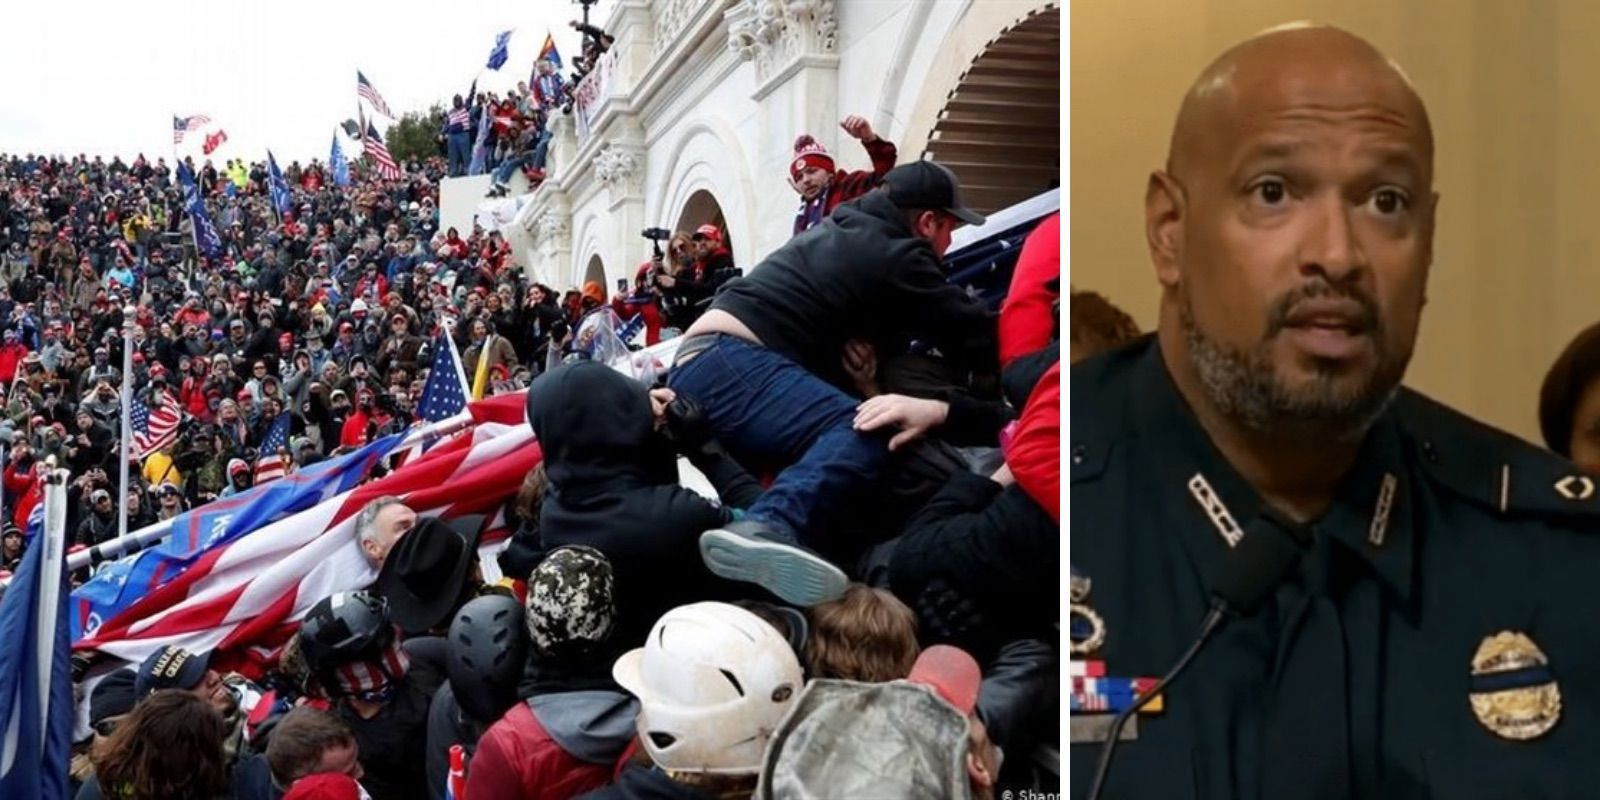 FBI finds 'scant evidence' that Jan. 6 Capitol riot was 'centrally coordinated'